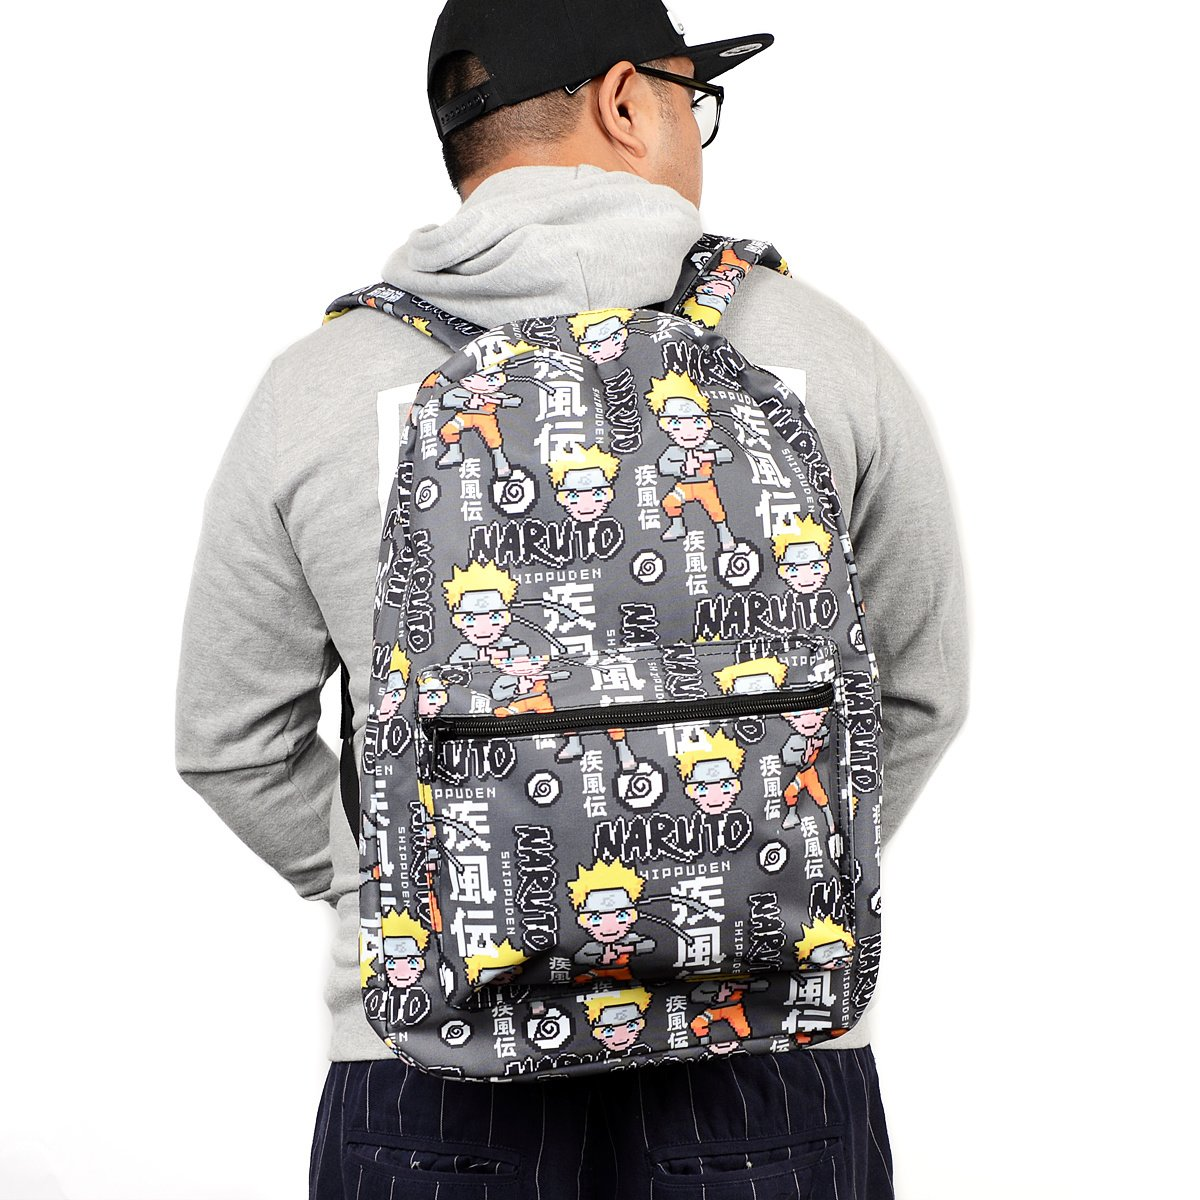 fff34d75a566 Naruto Shippuden Sublimated Backpack